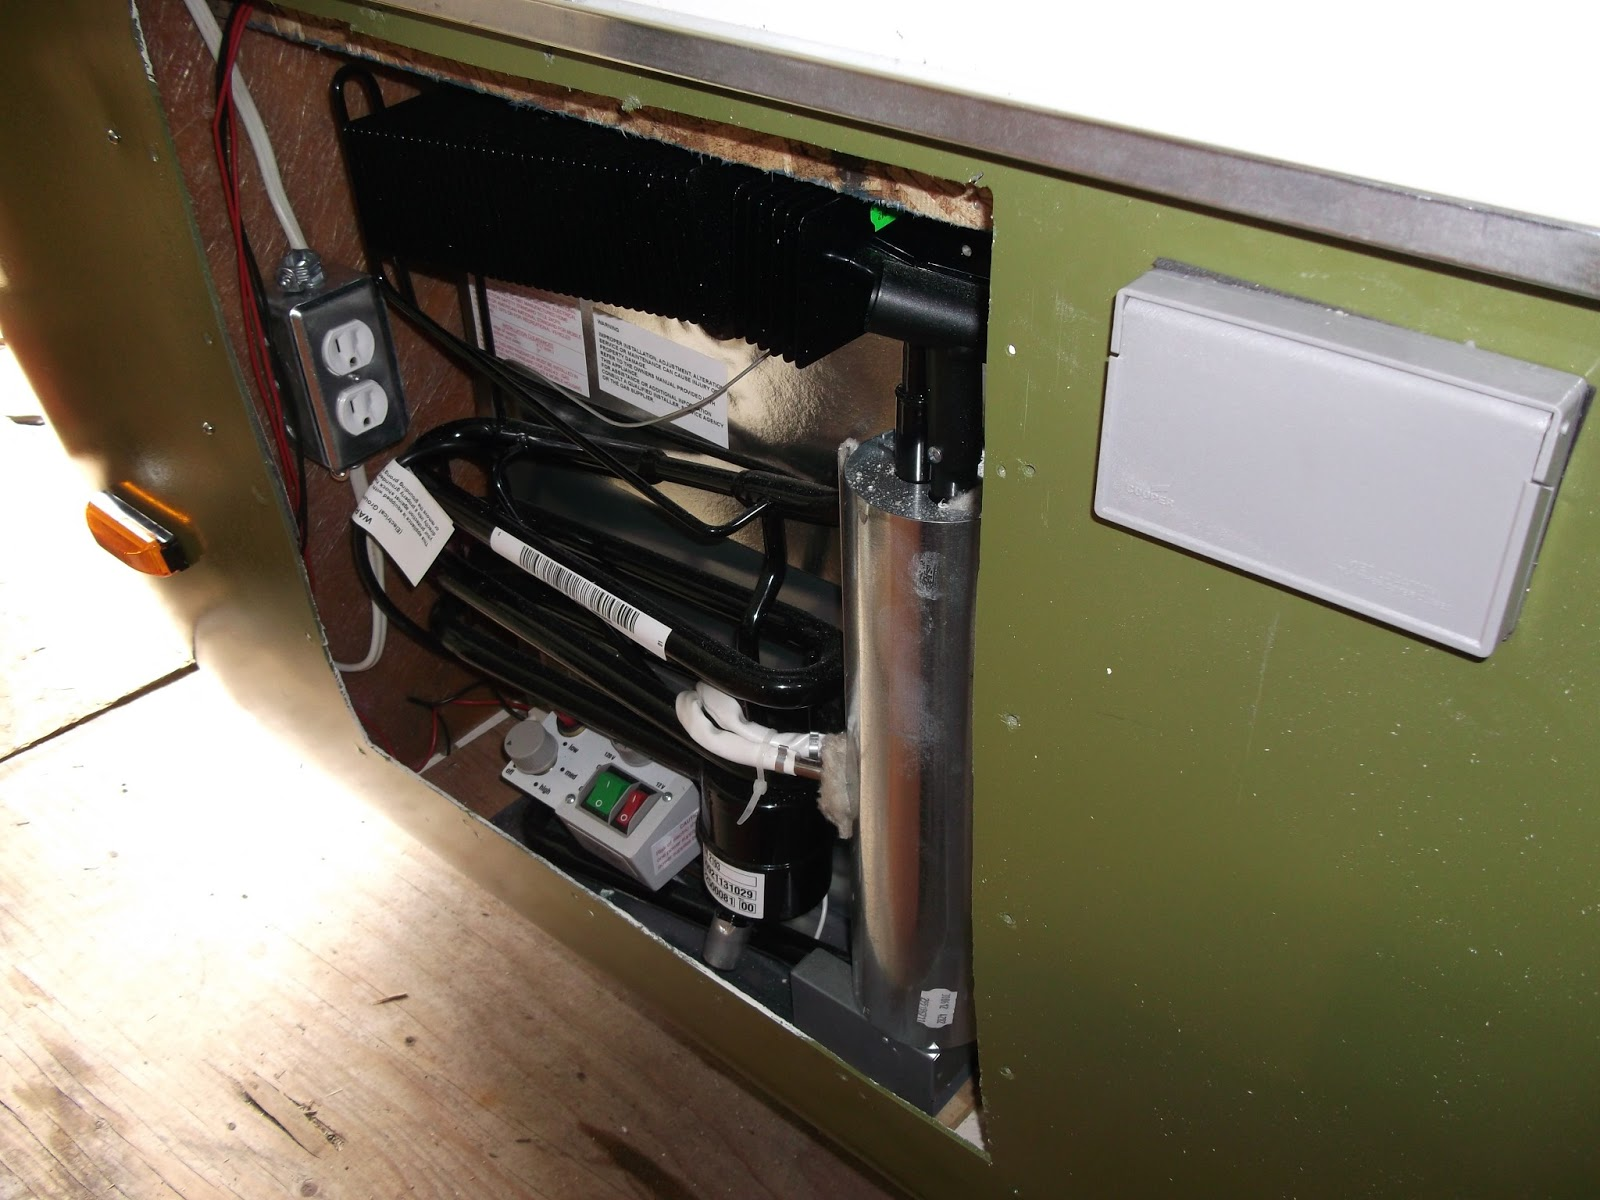 Here is the back of the fridge with its 120 volt and 12 volt supplies.